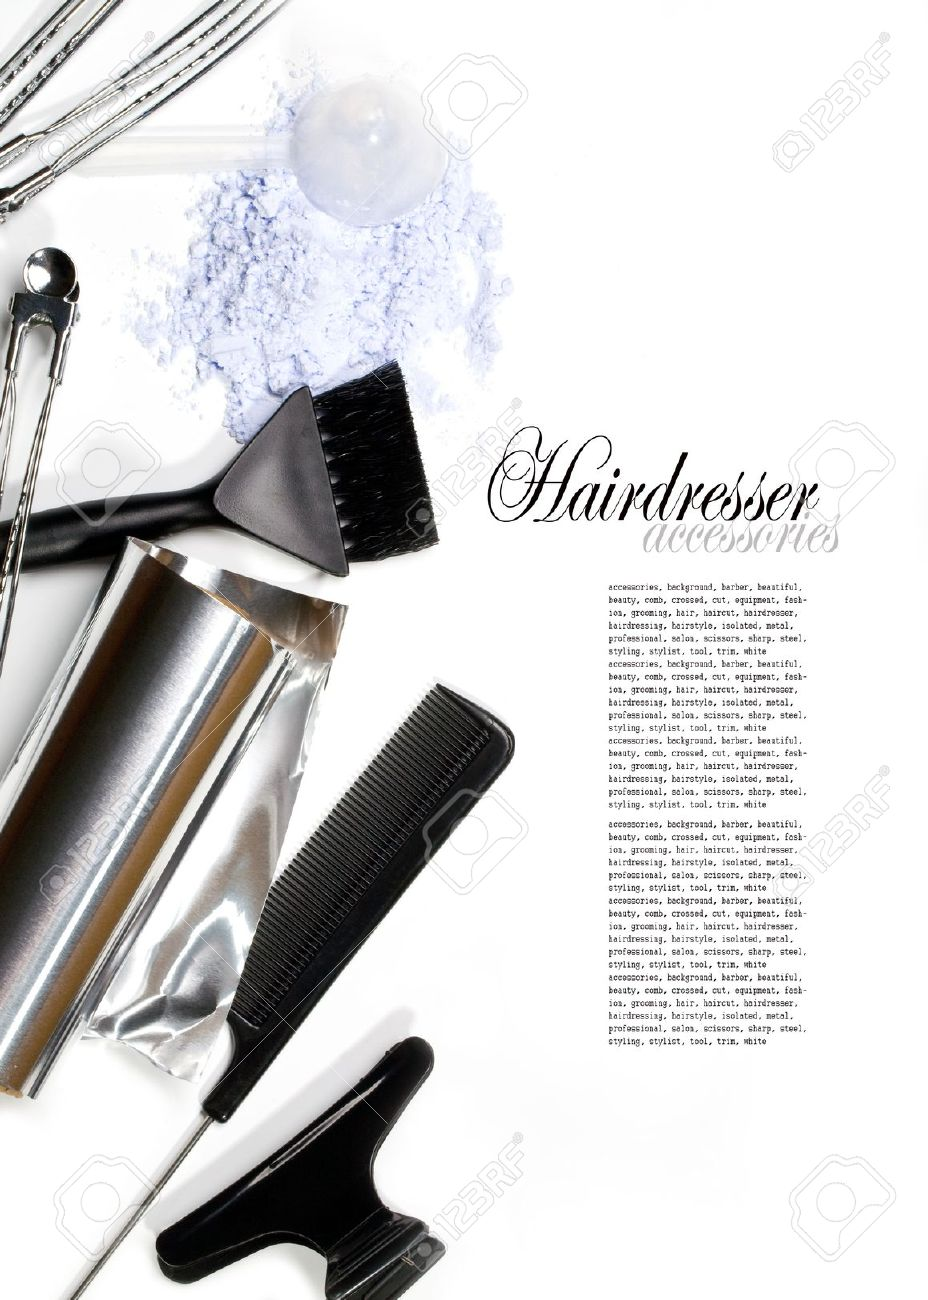 hairdresser Accessories for coloring hair on a white background Stock Photo - 13555082